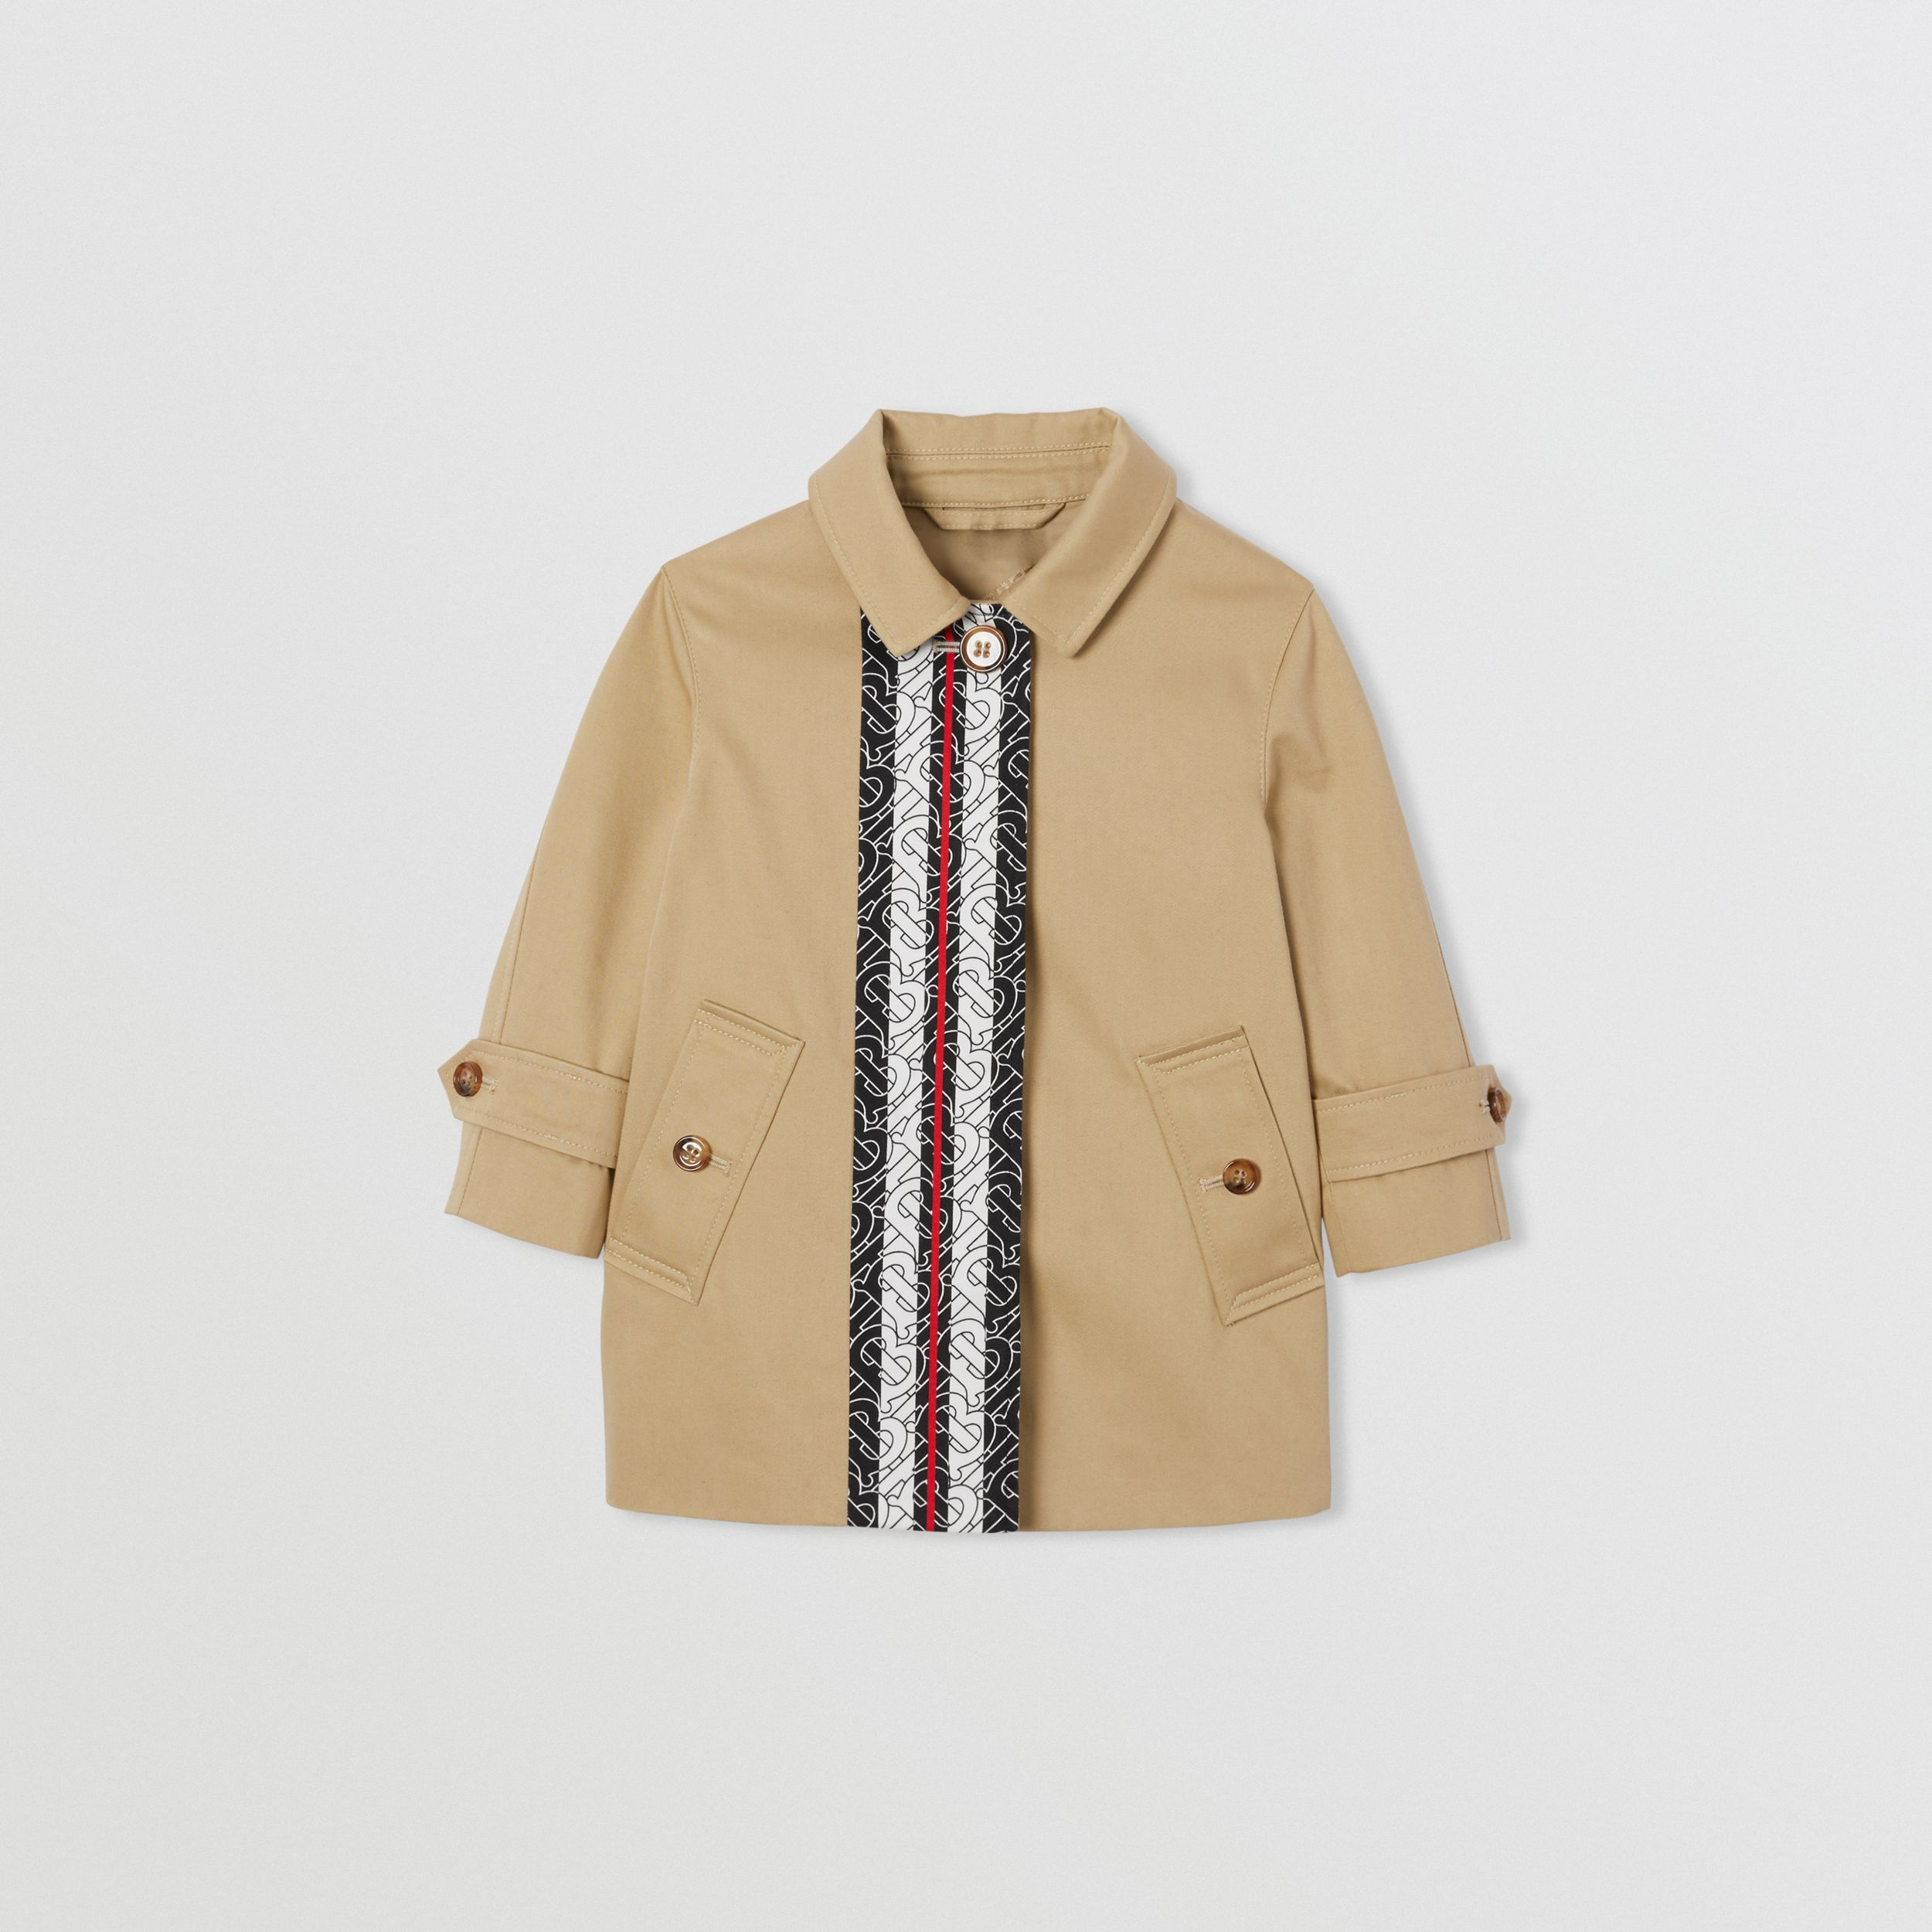 Monogram Stripe Print Cotton Car Coat in Honey - Children | Burberry Canada - 1